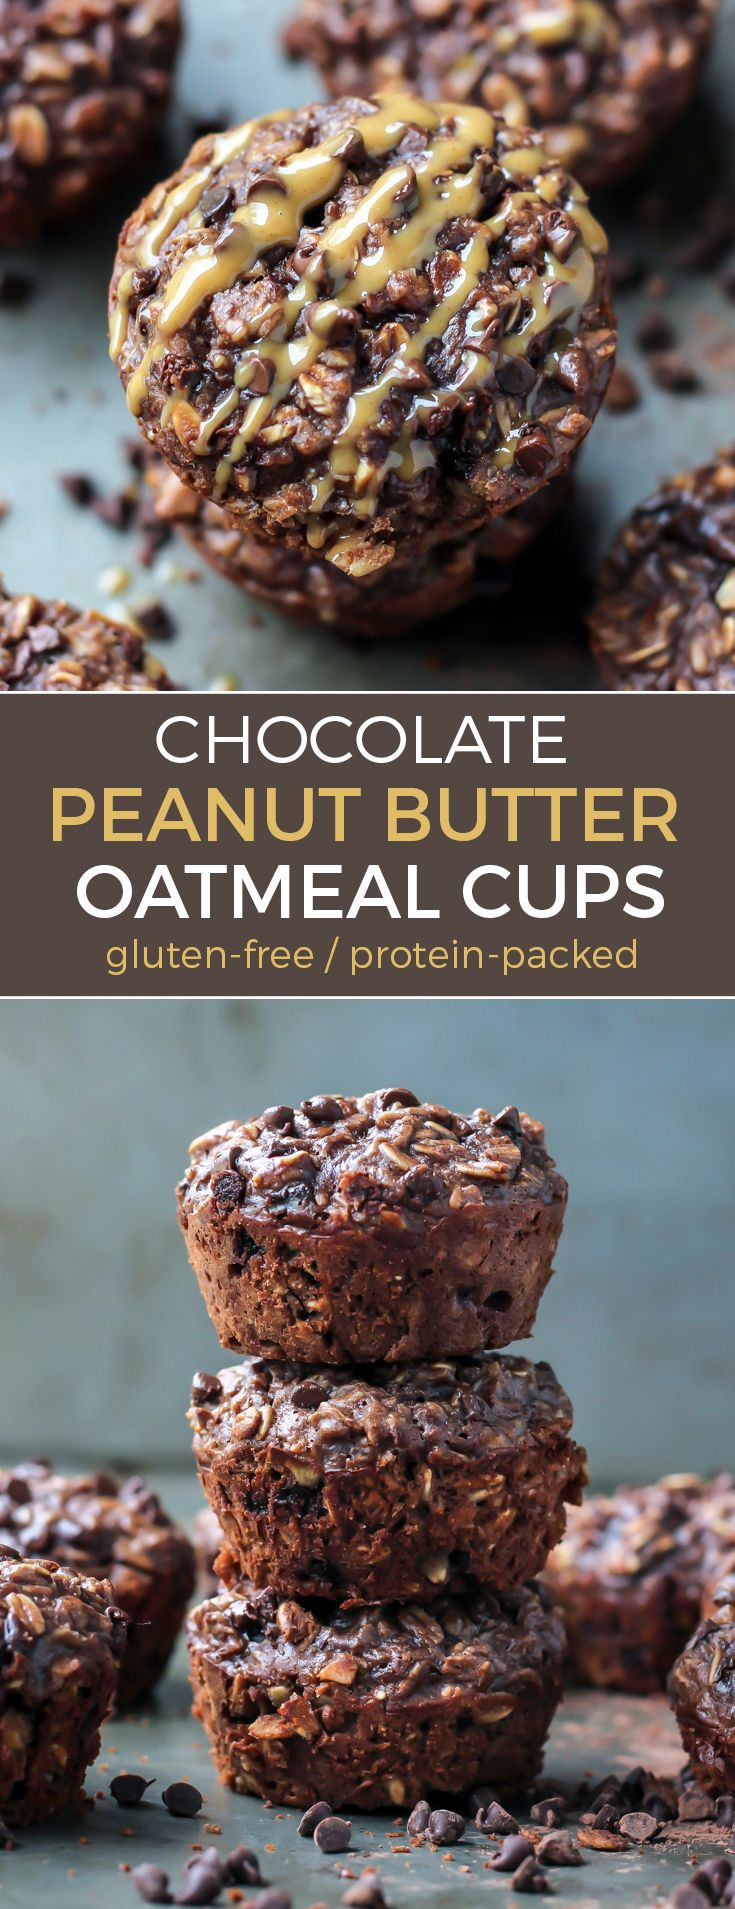 Chocolate Peanut Butter Baked Oatmeal Cups with protein. Gluten-free and 13g protein.